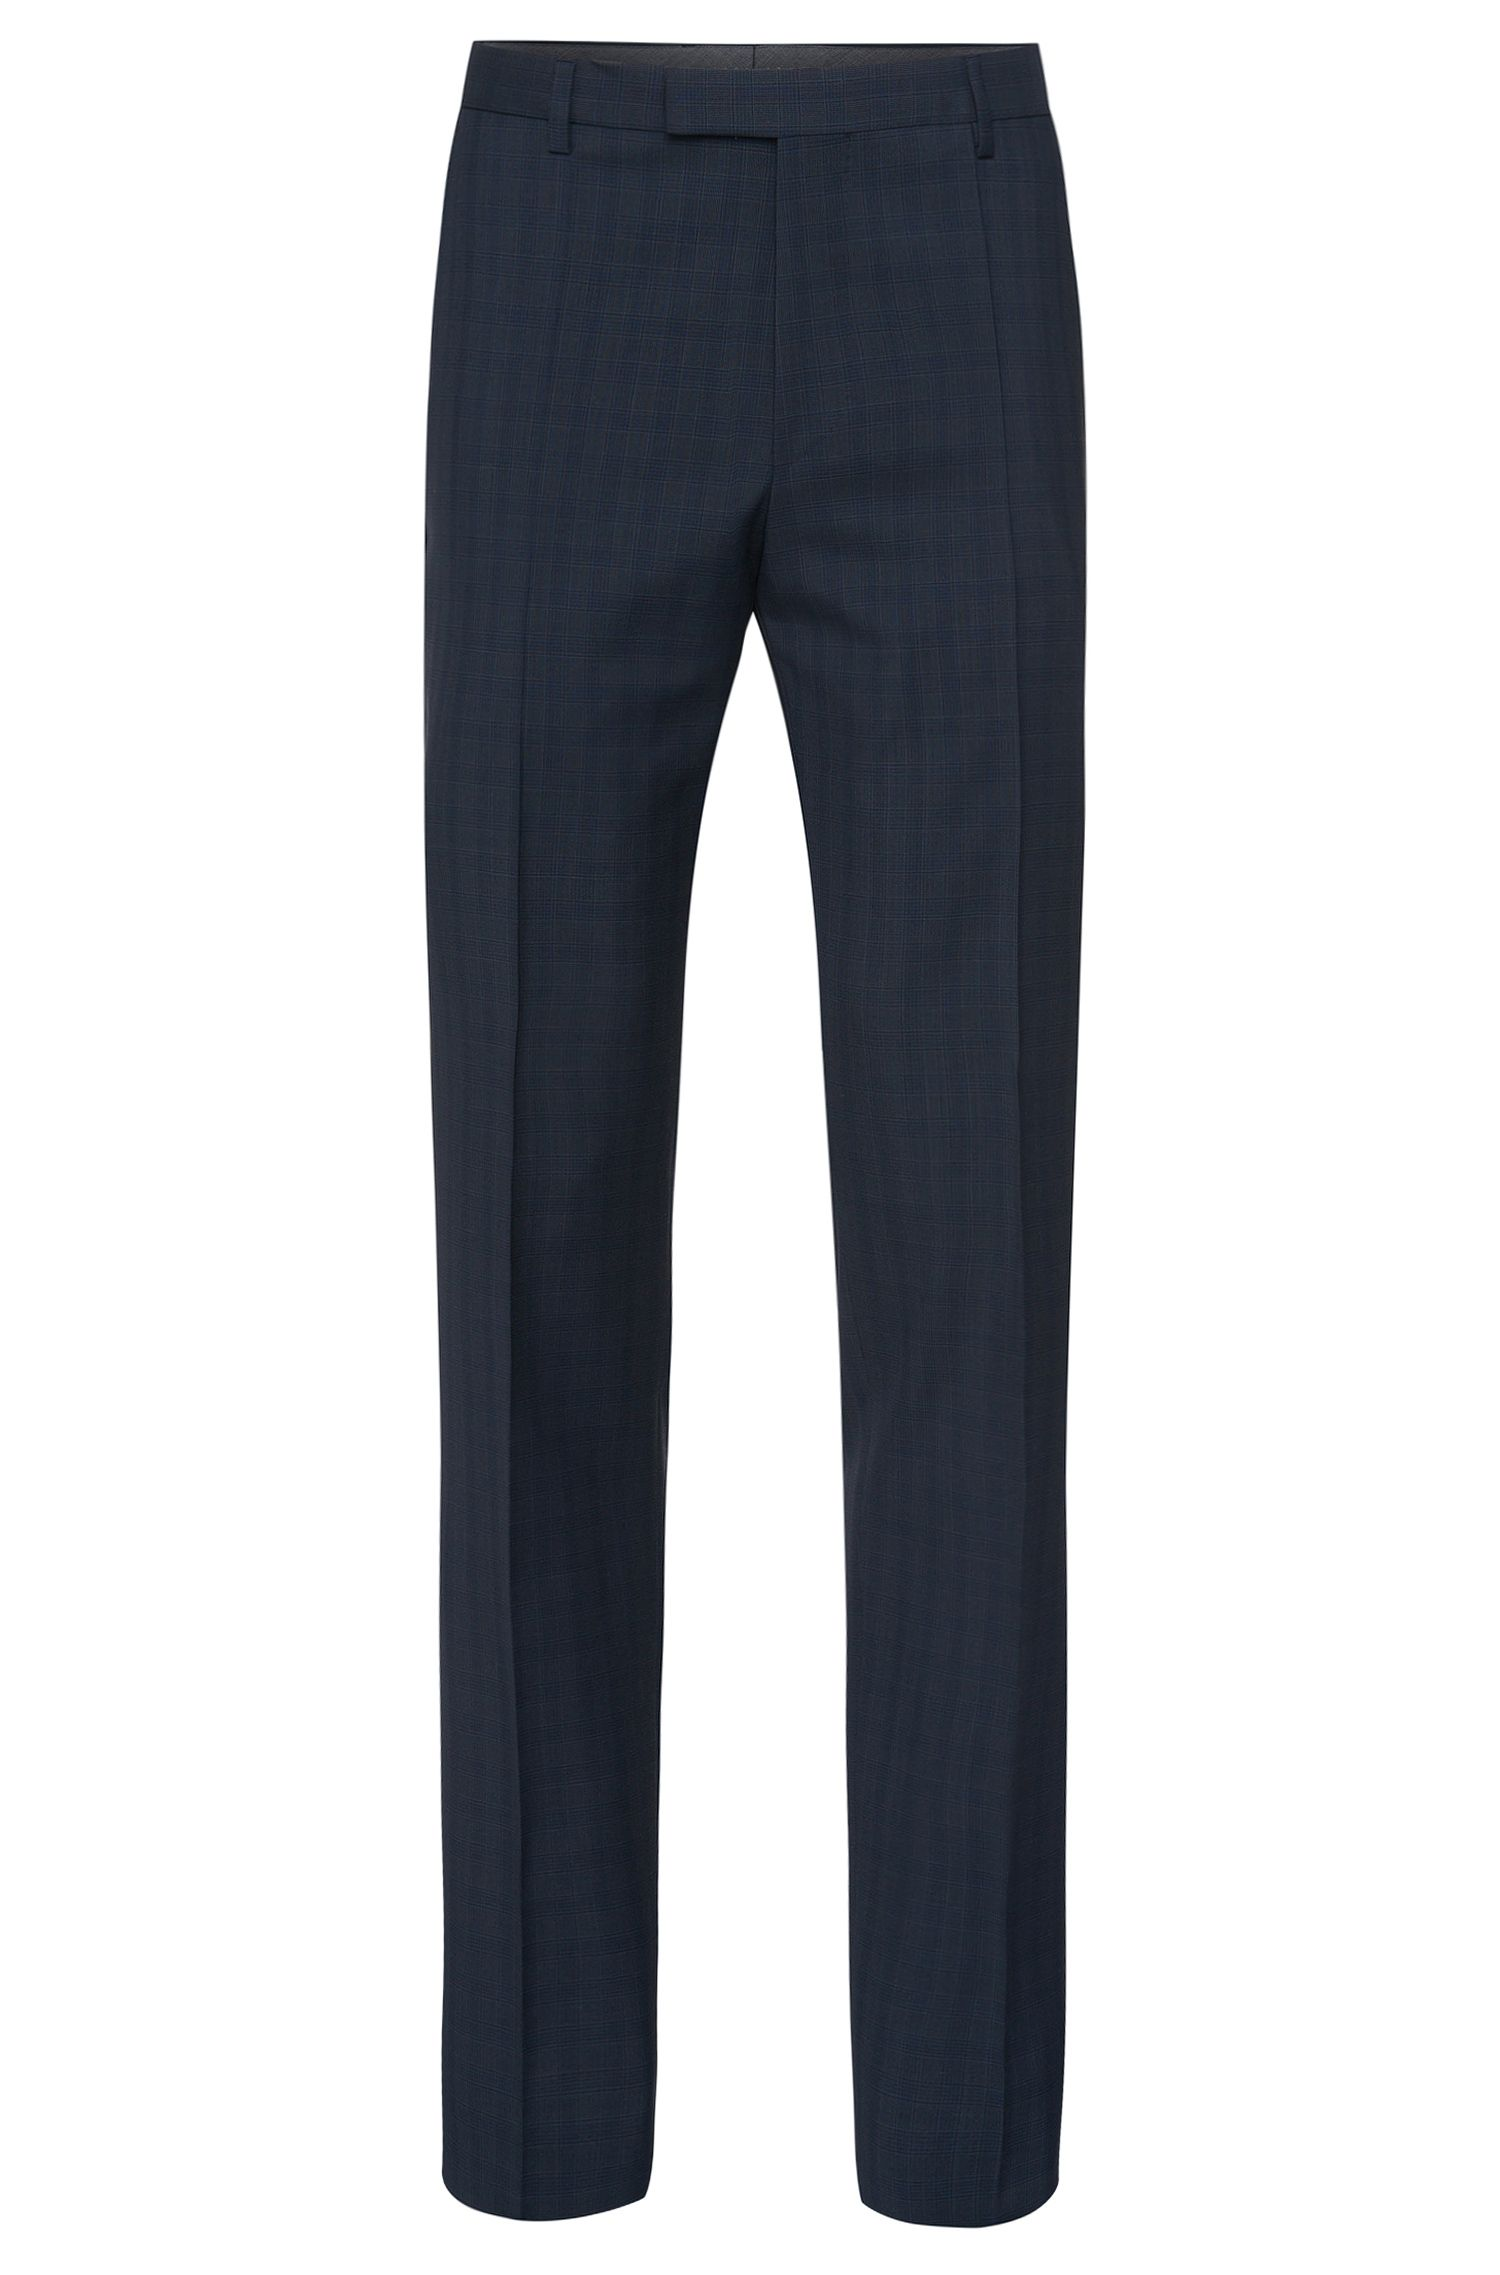 'Leenon' | Regular Fit, Italian Virgin Wool Plaid Dress Pants